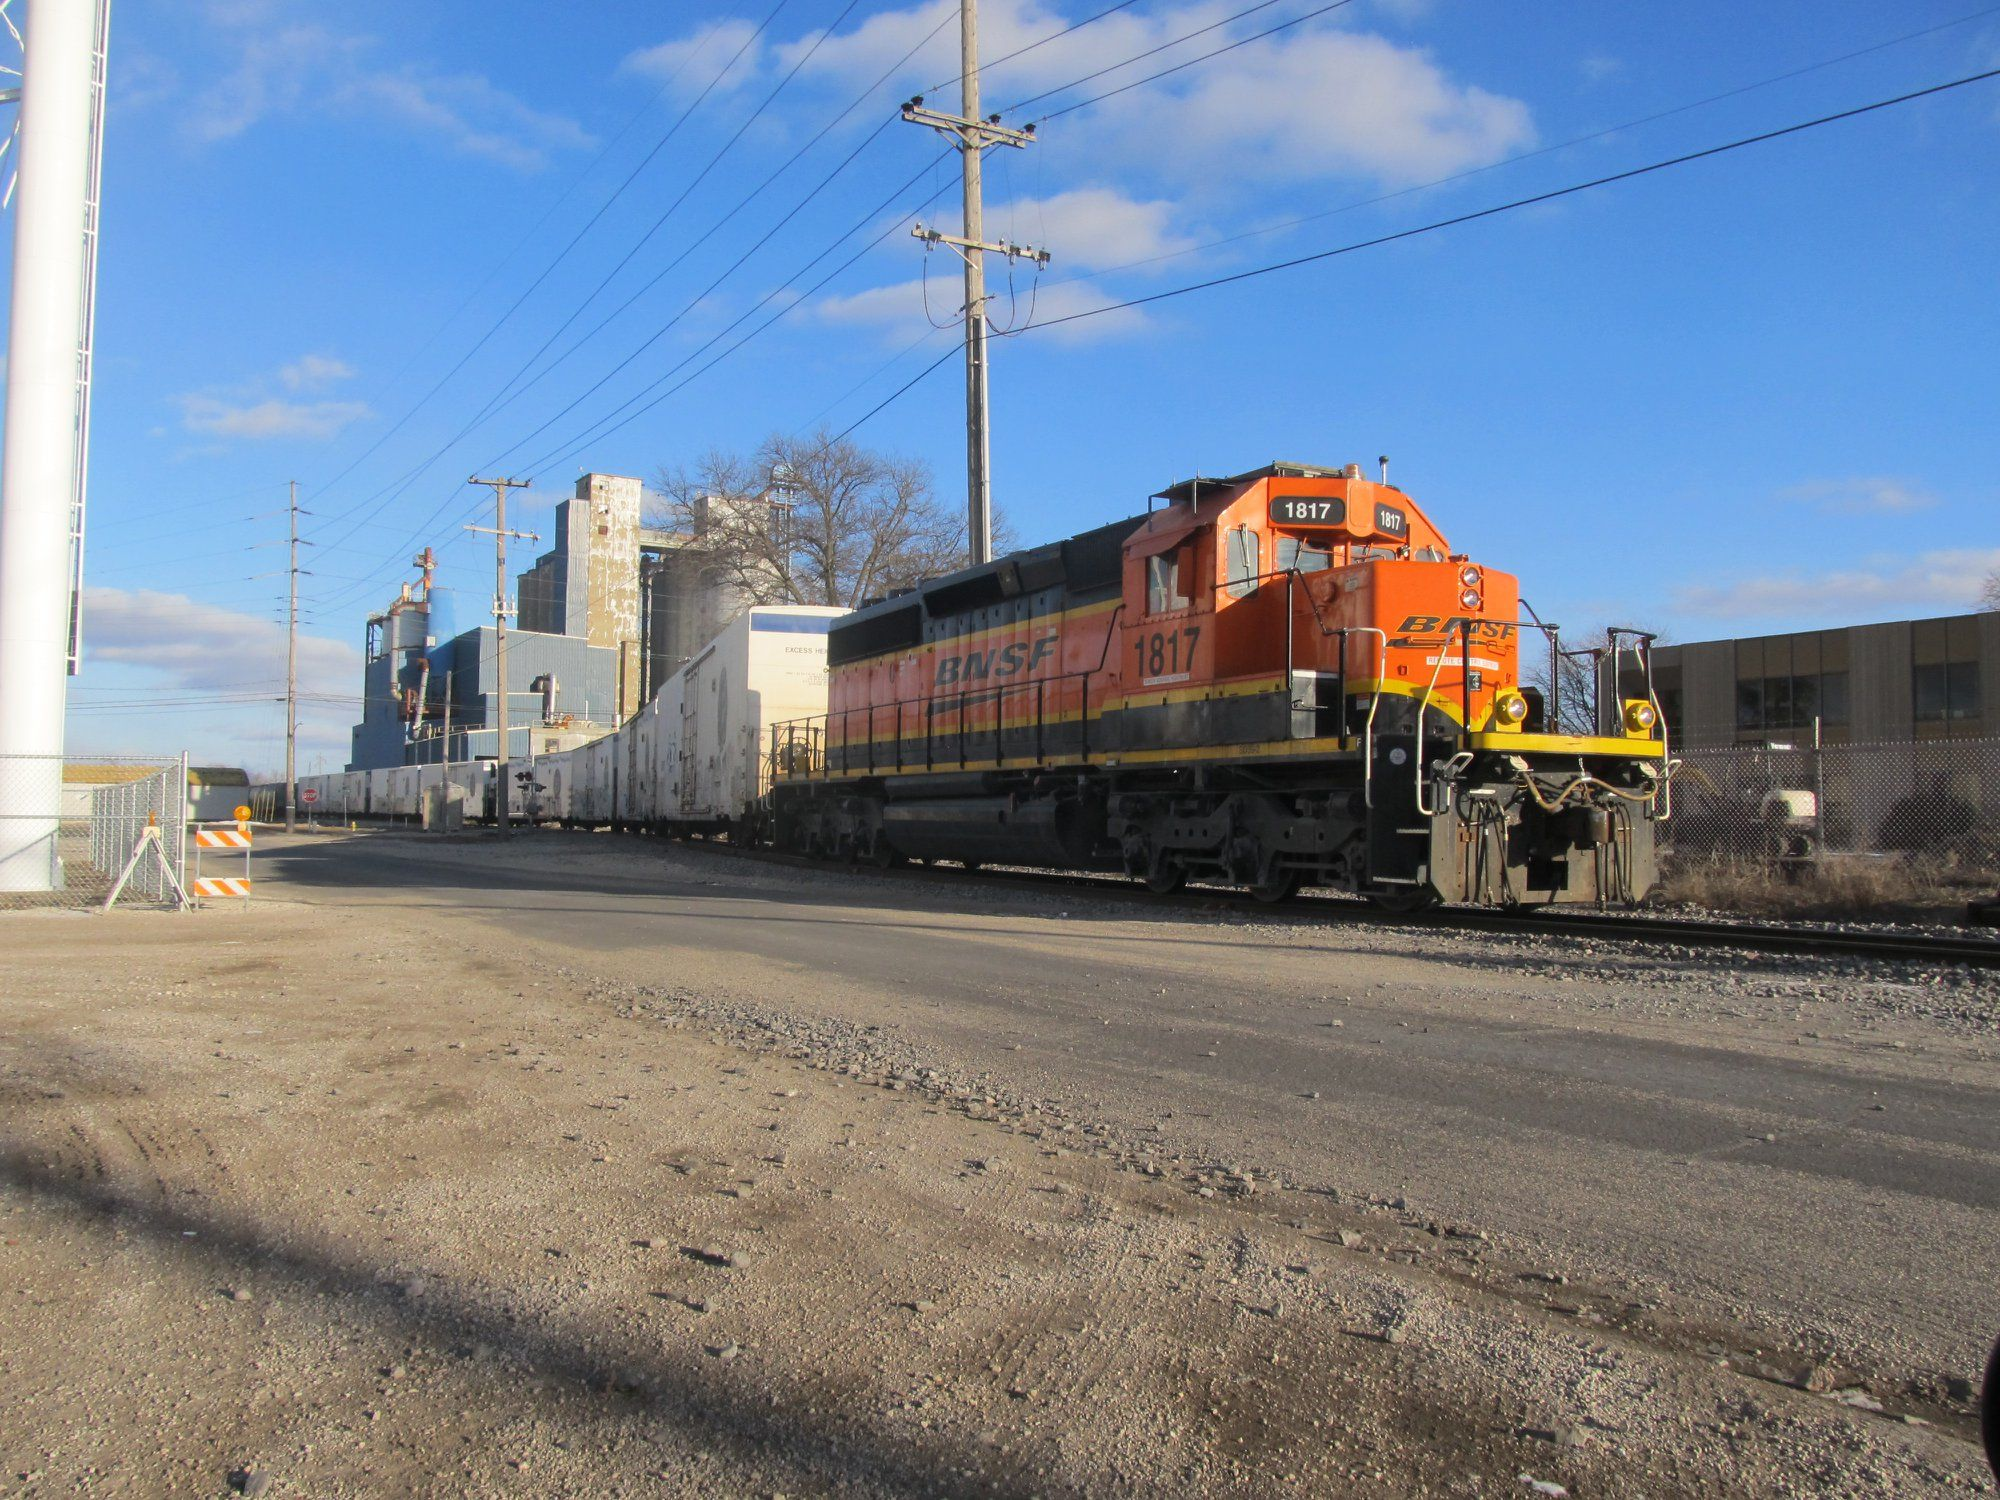 Bnsf 1817 city job on the industrial connection track at